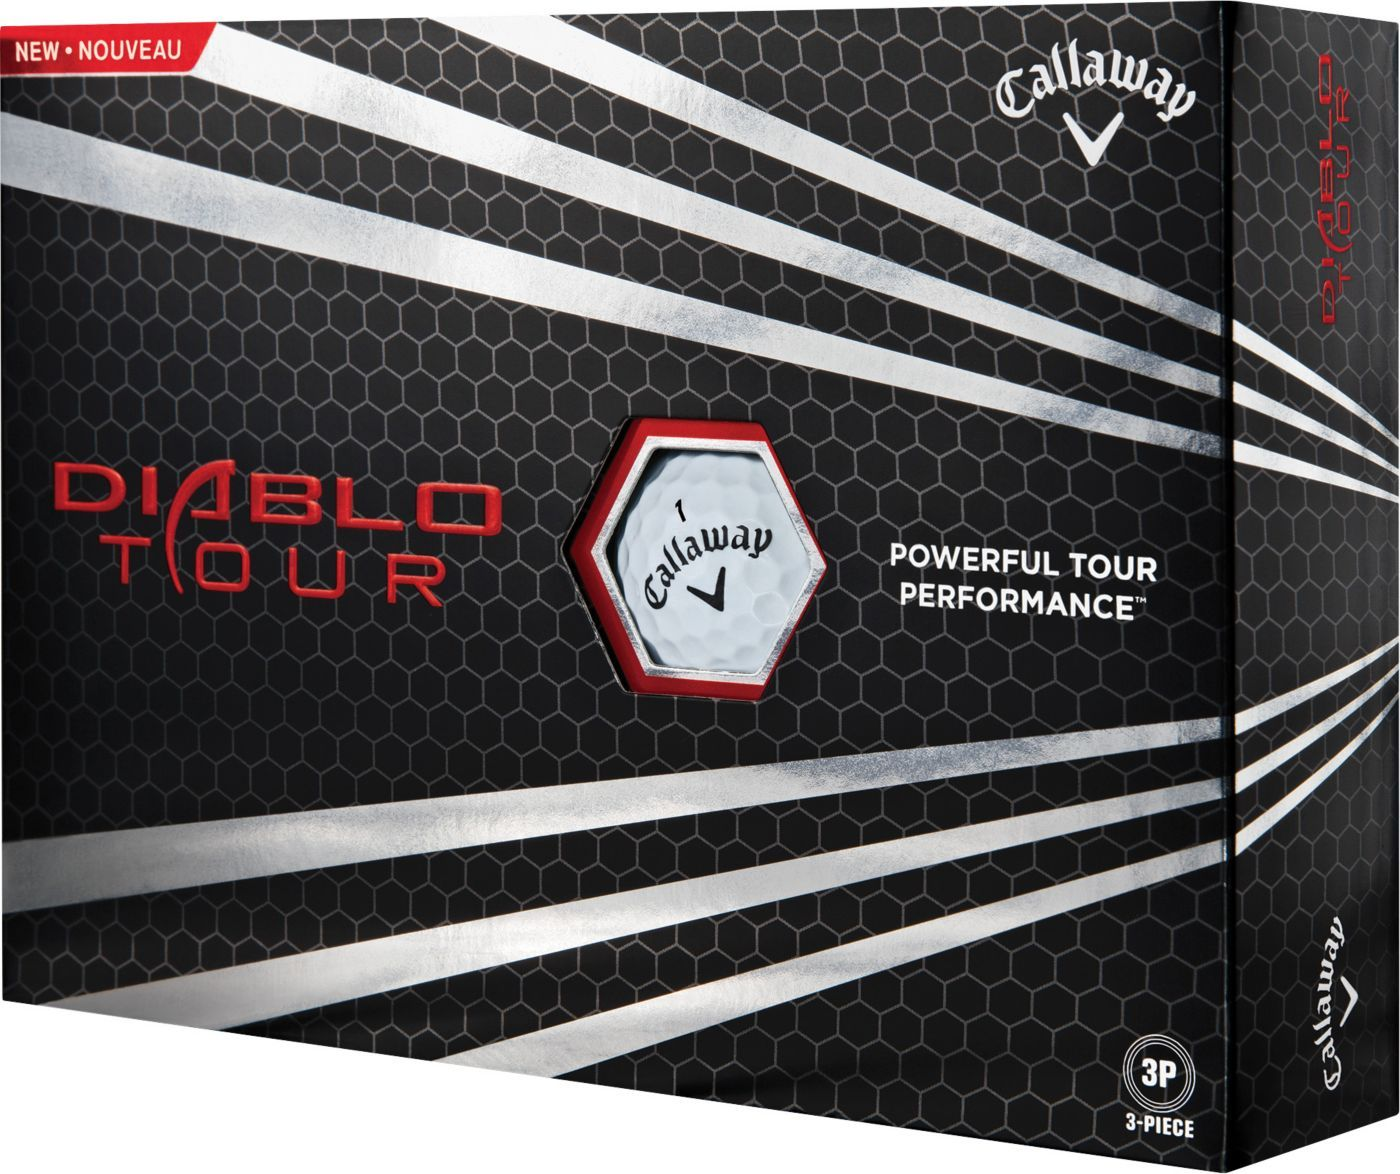 Callaway Diablo Tour Golf Balls Golf tips, Golf ball